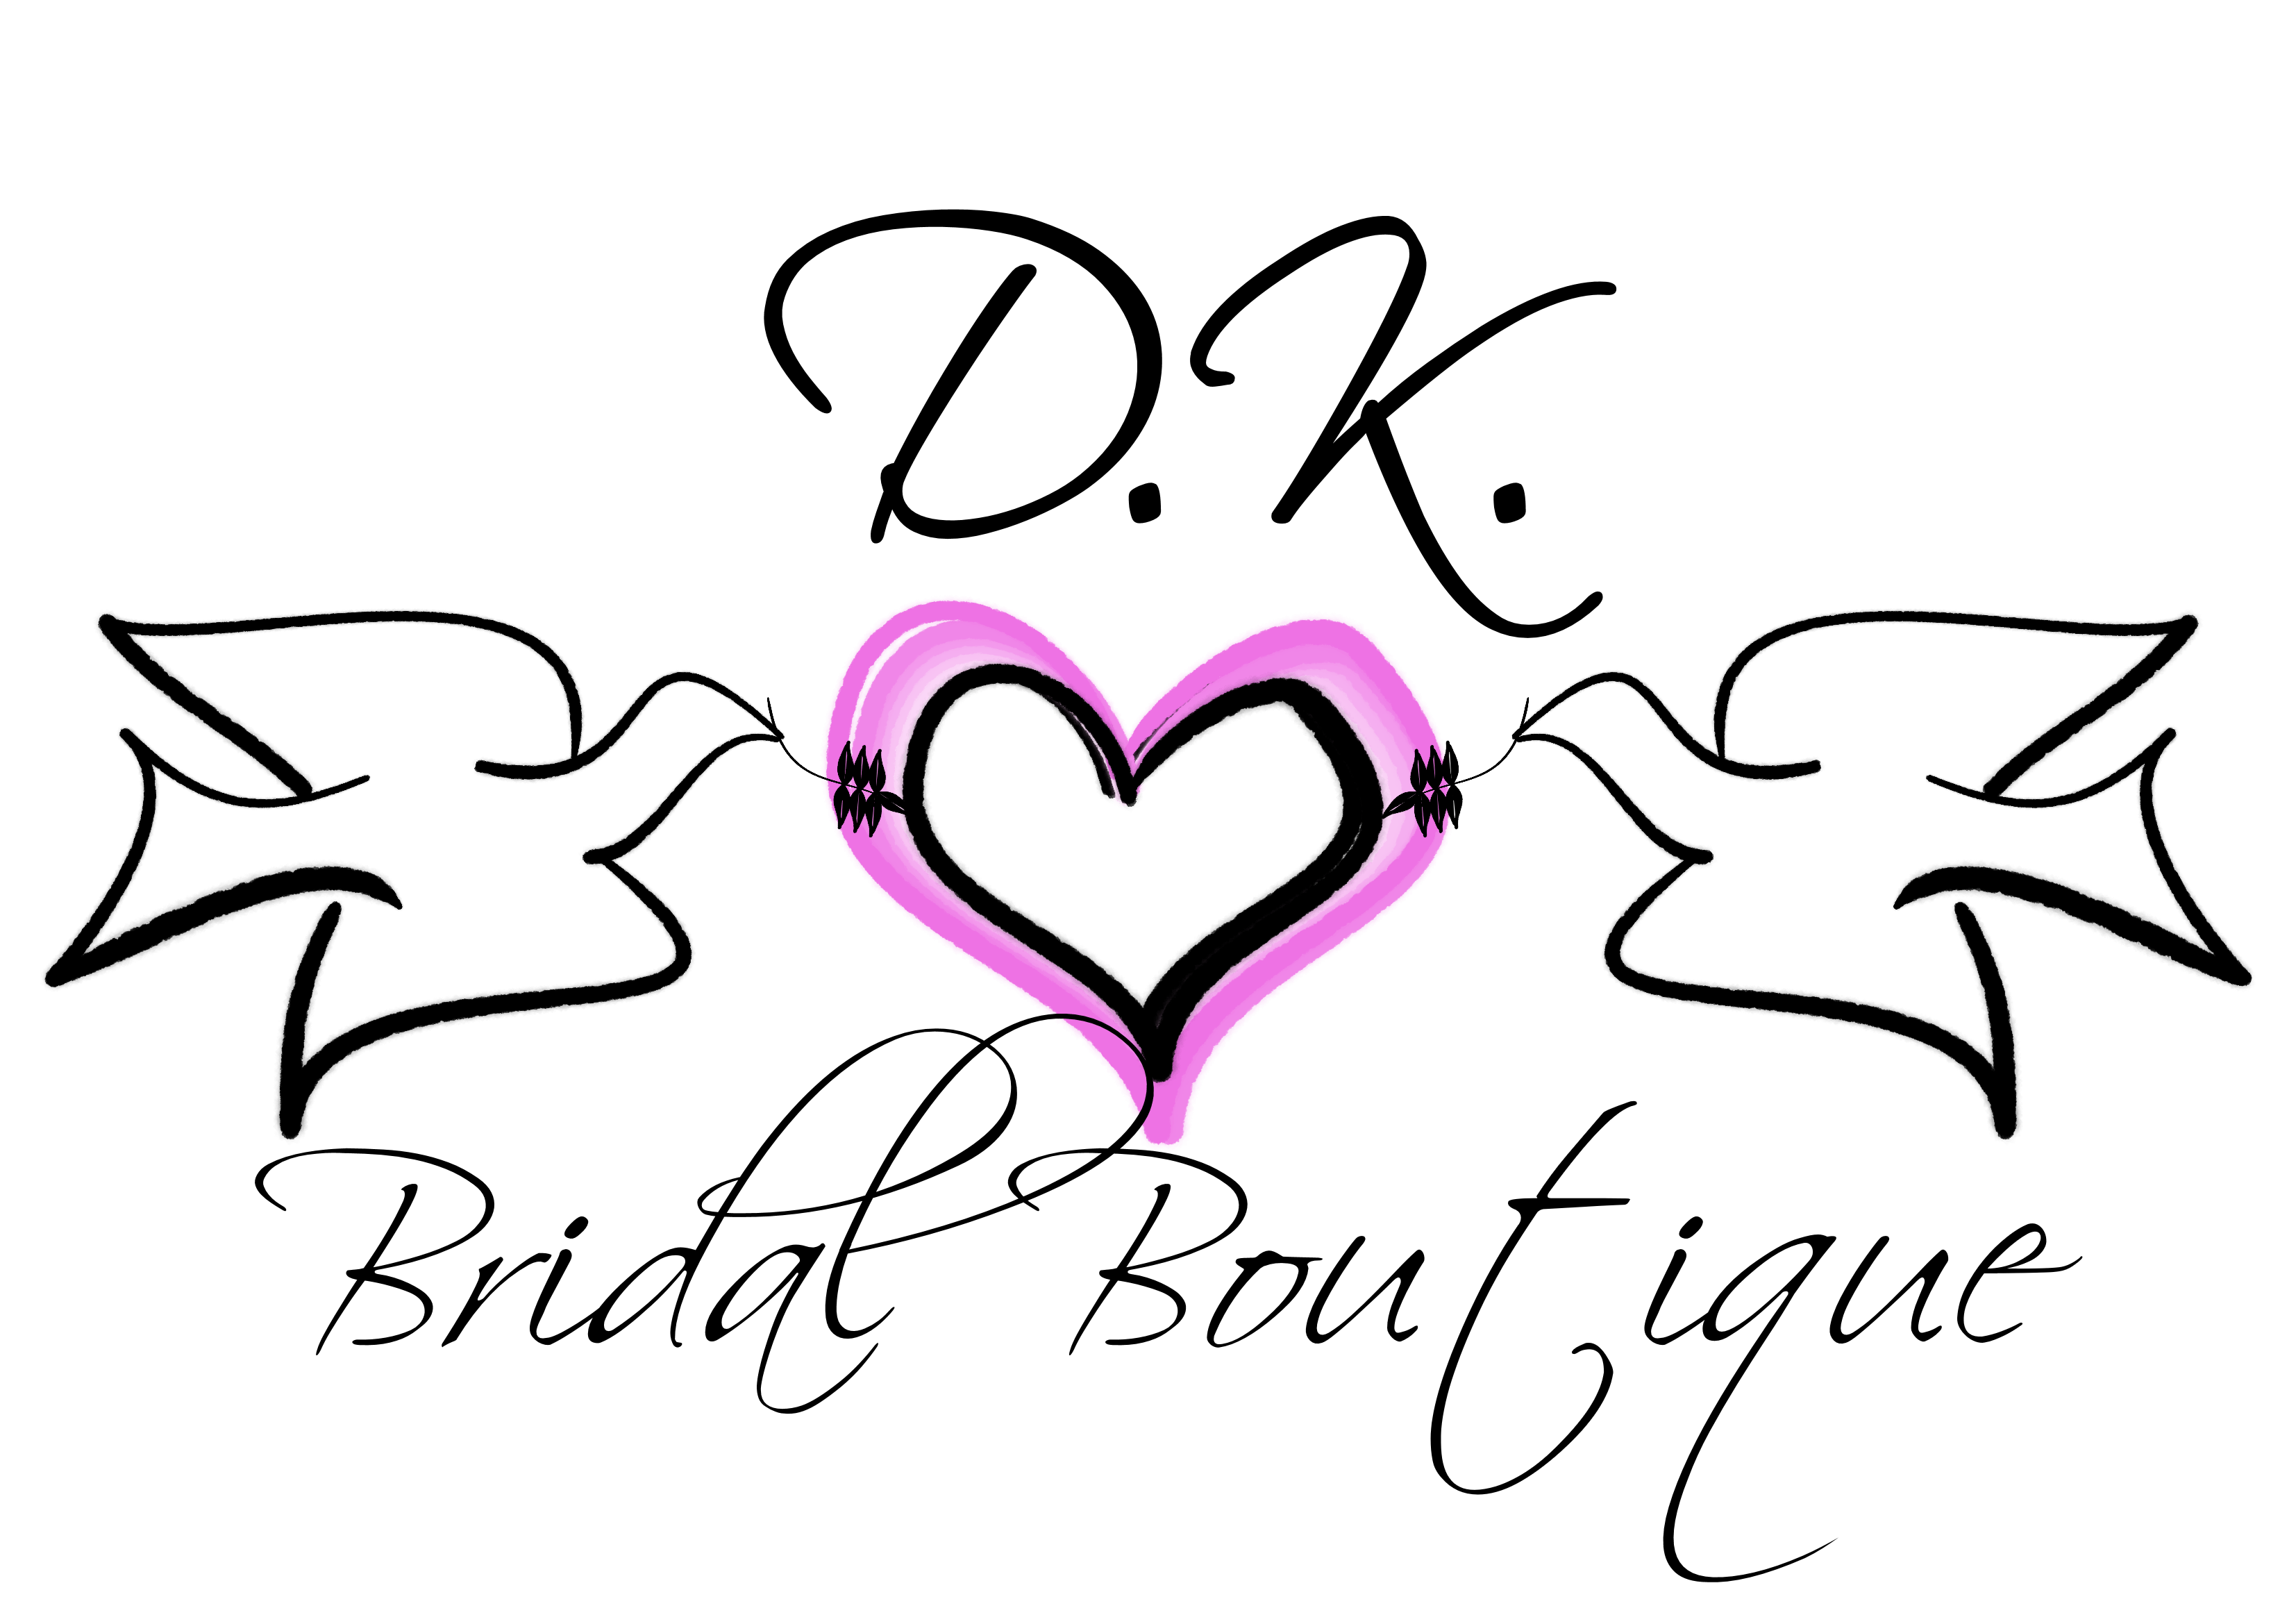 Based in Bloemfontein, Free State, D.K. Bridal Boutique is